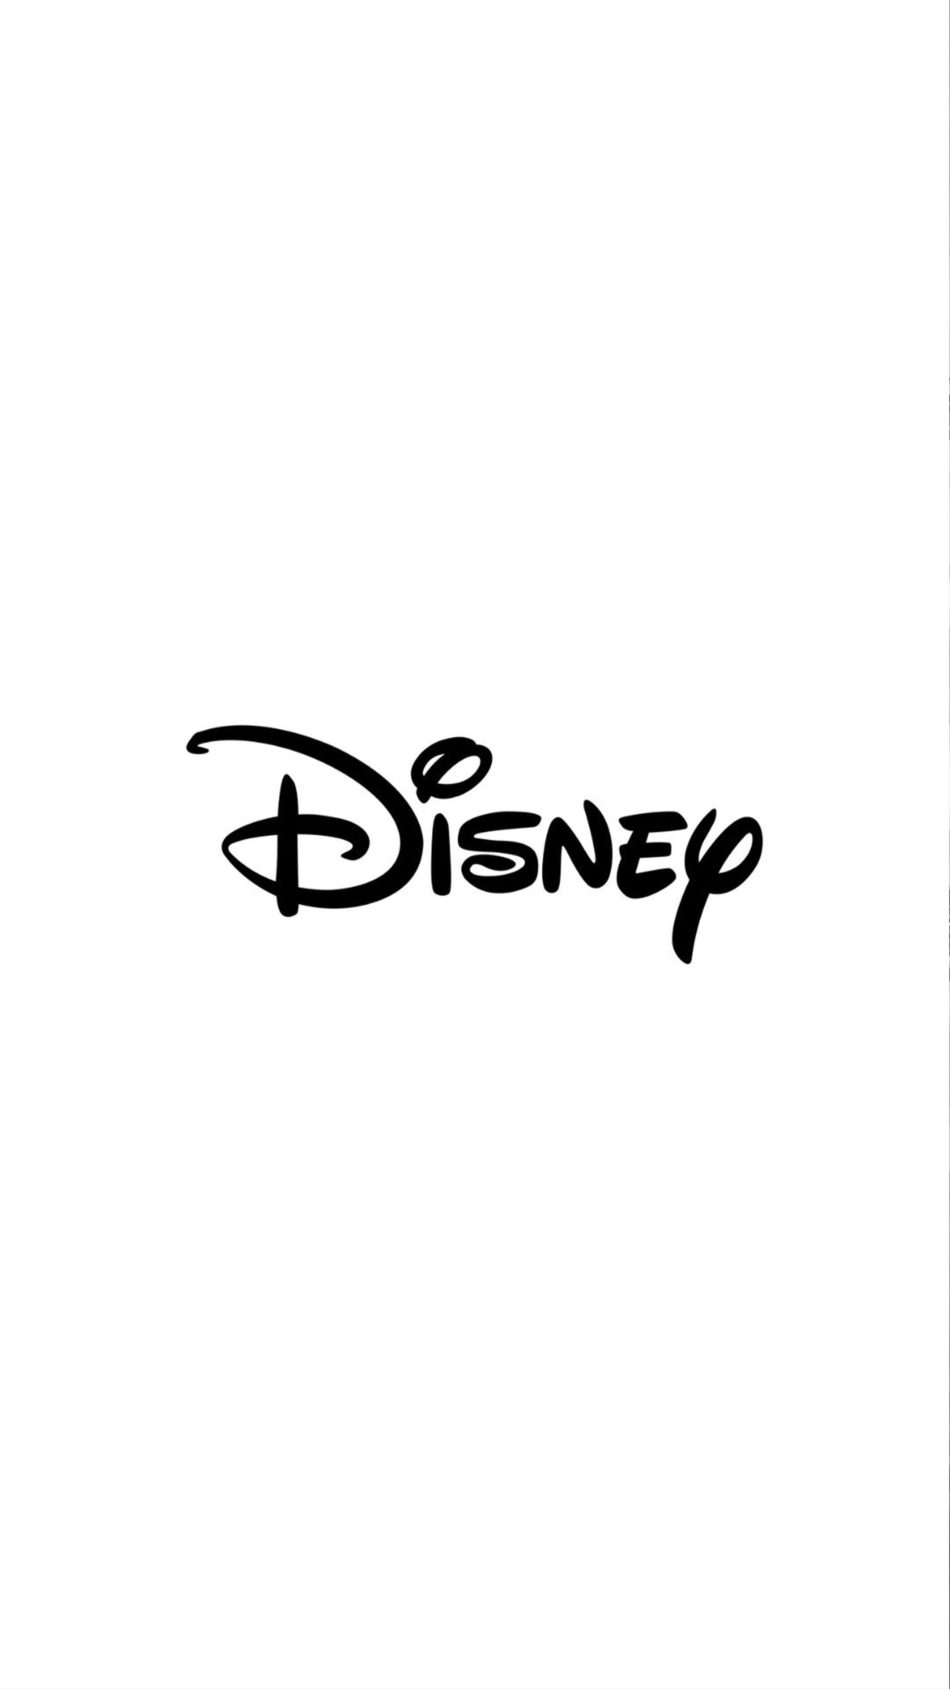 Disney Logo White Background 4K Ultra HD Mobile Wallpaper